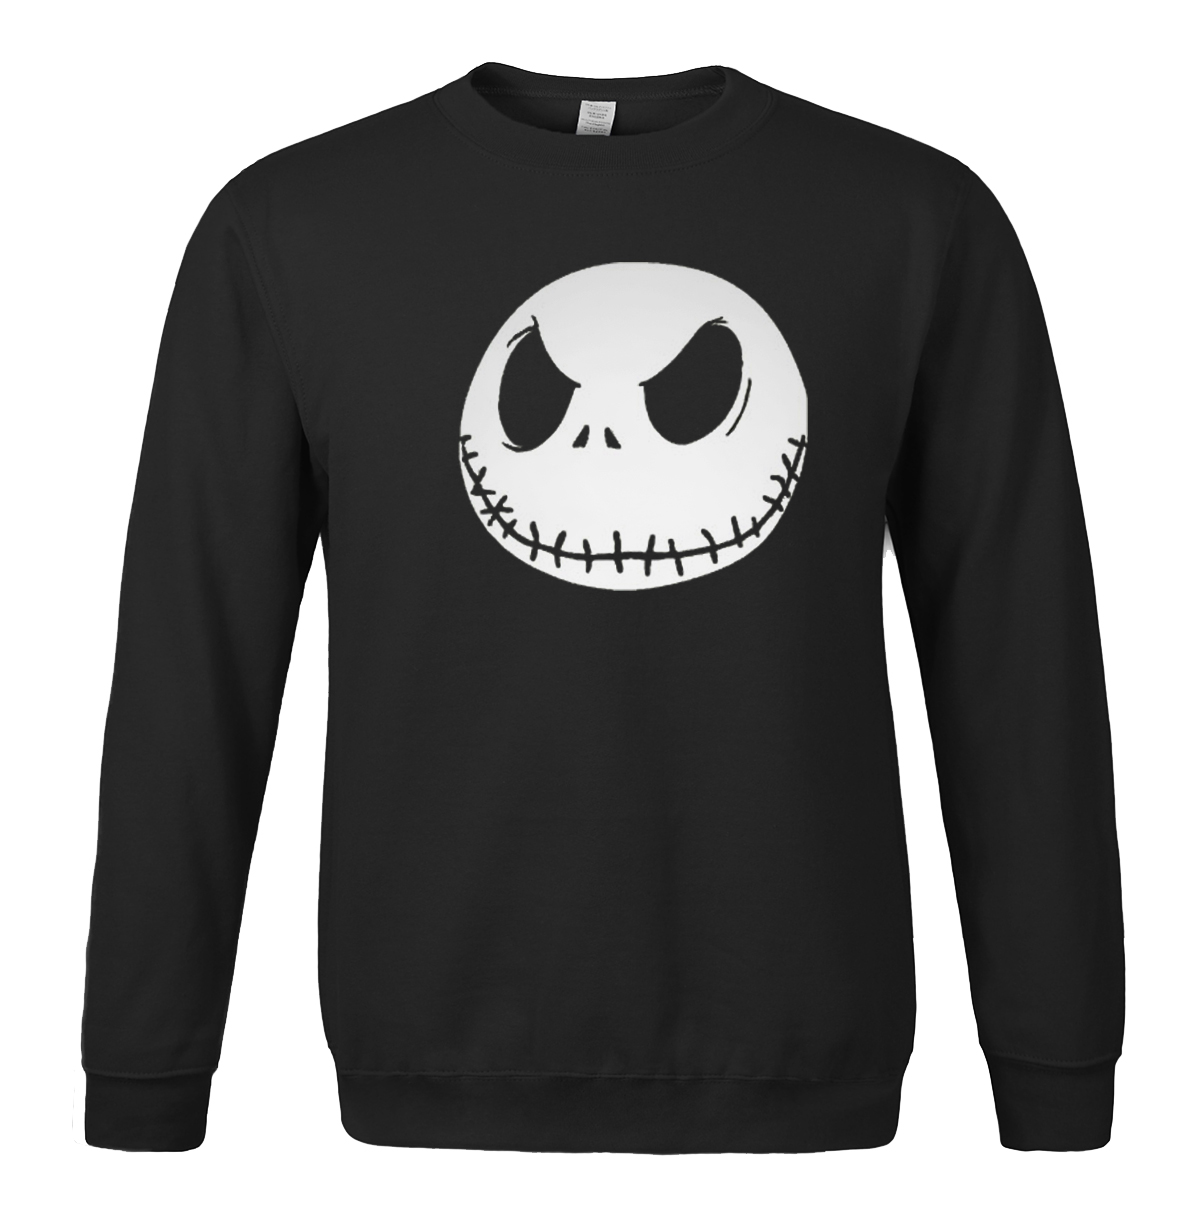 2019 spring winter hoody sweatshirts Jack Skellington Evil Face character pattern men's sportwear fashion hip hop brand-clothing